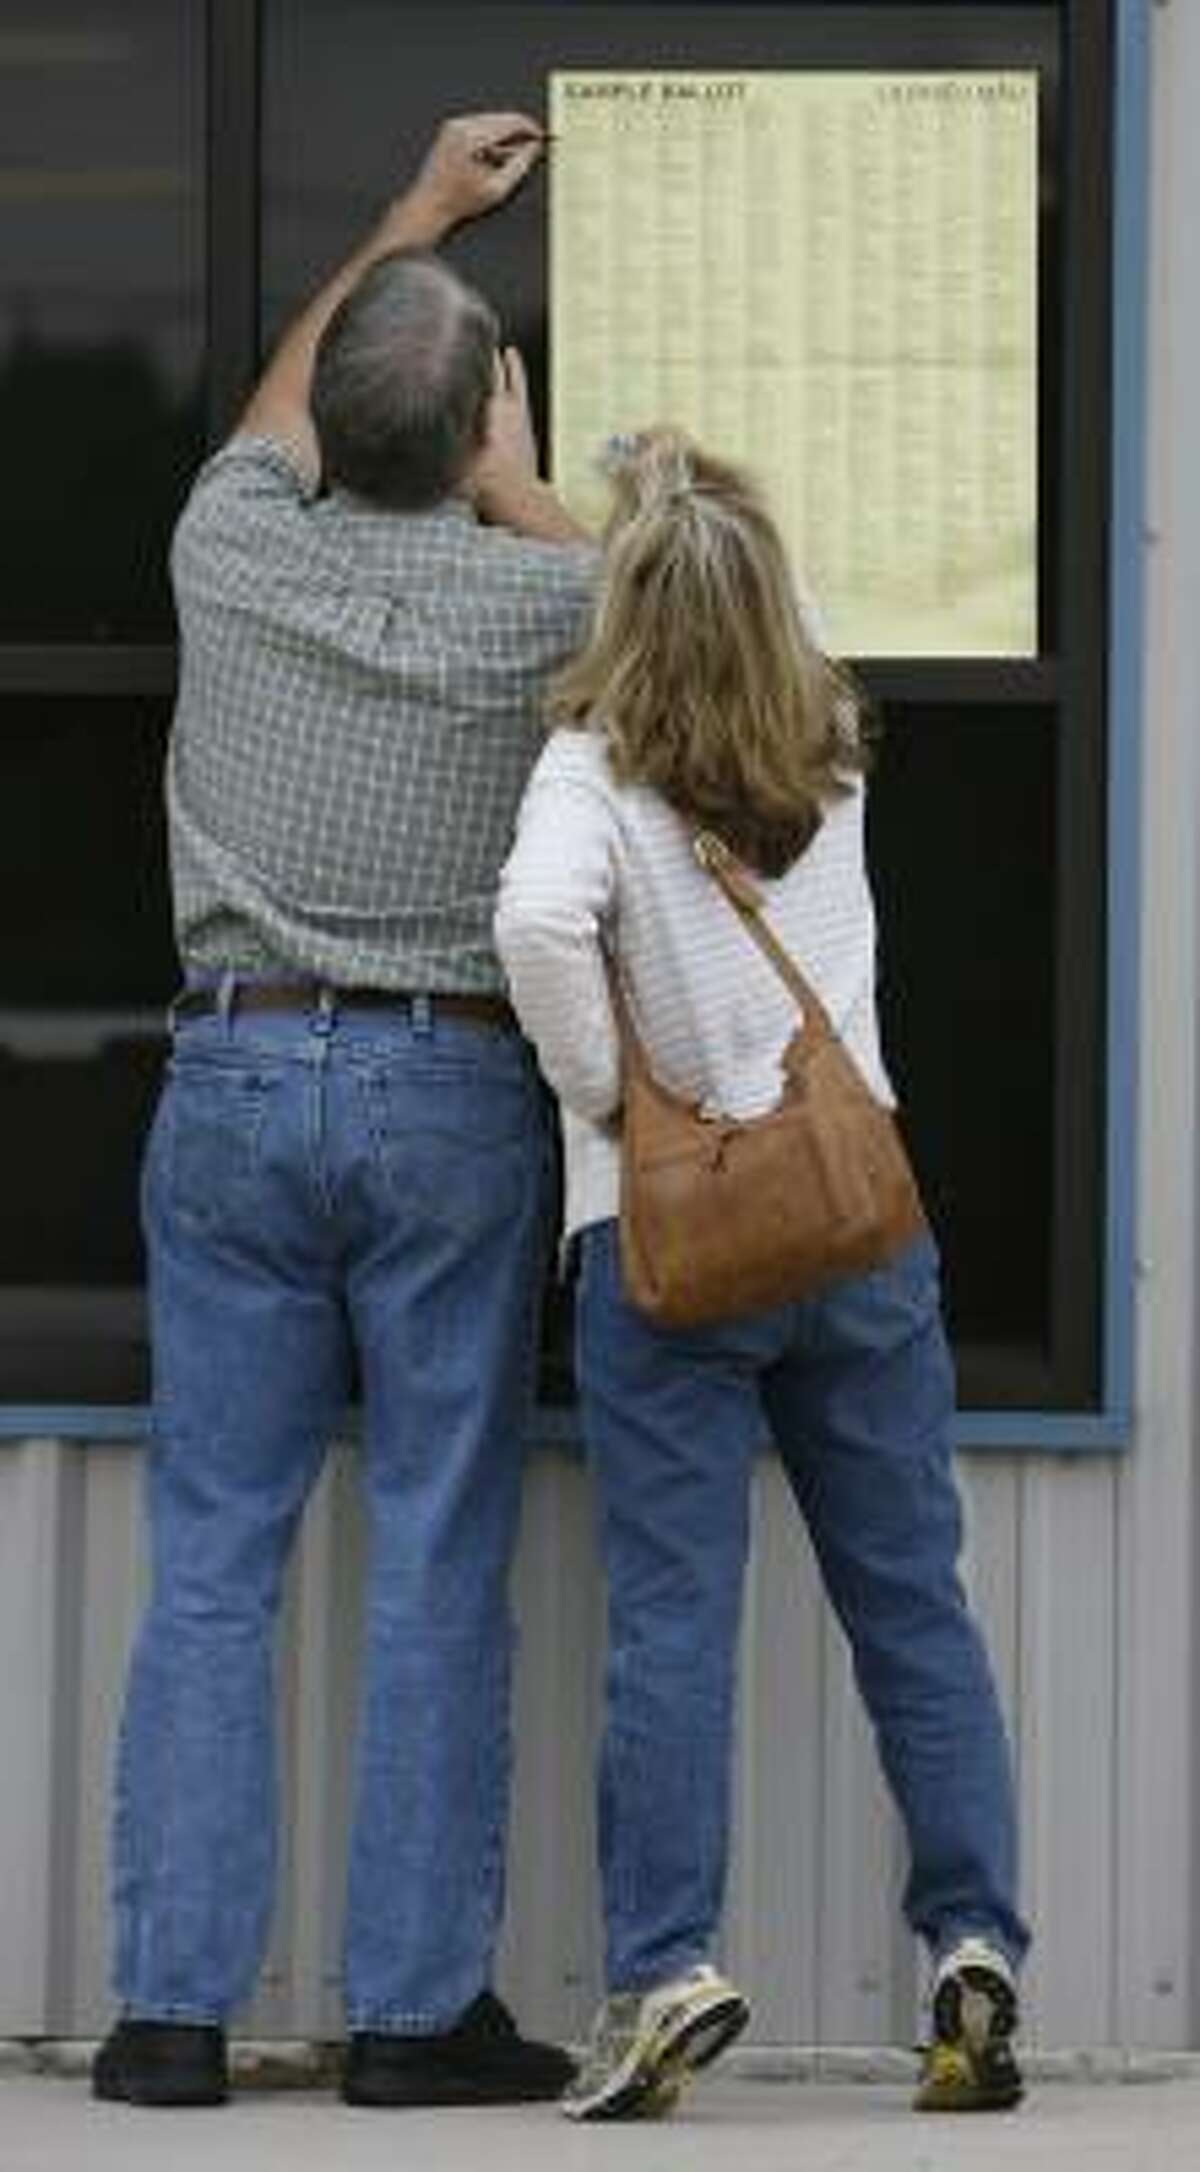 Before voting, Ed and Ellen Moers of Cypress read a sample ballot Tuesday outside the Precinct 126 polling place at Rosehill Volunteer Fire Department in Tomball. Most precincts in the area reported low voter turnout for this election.